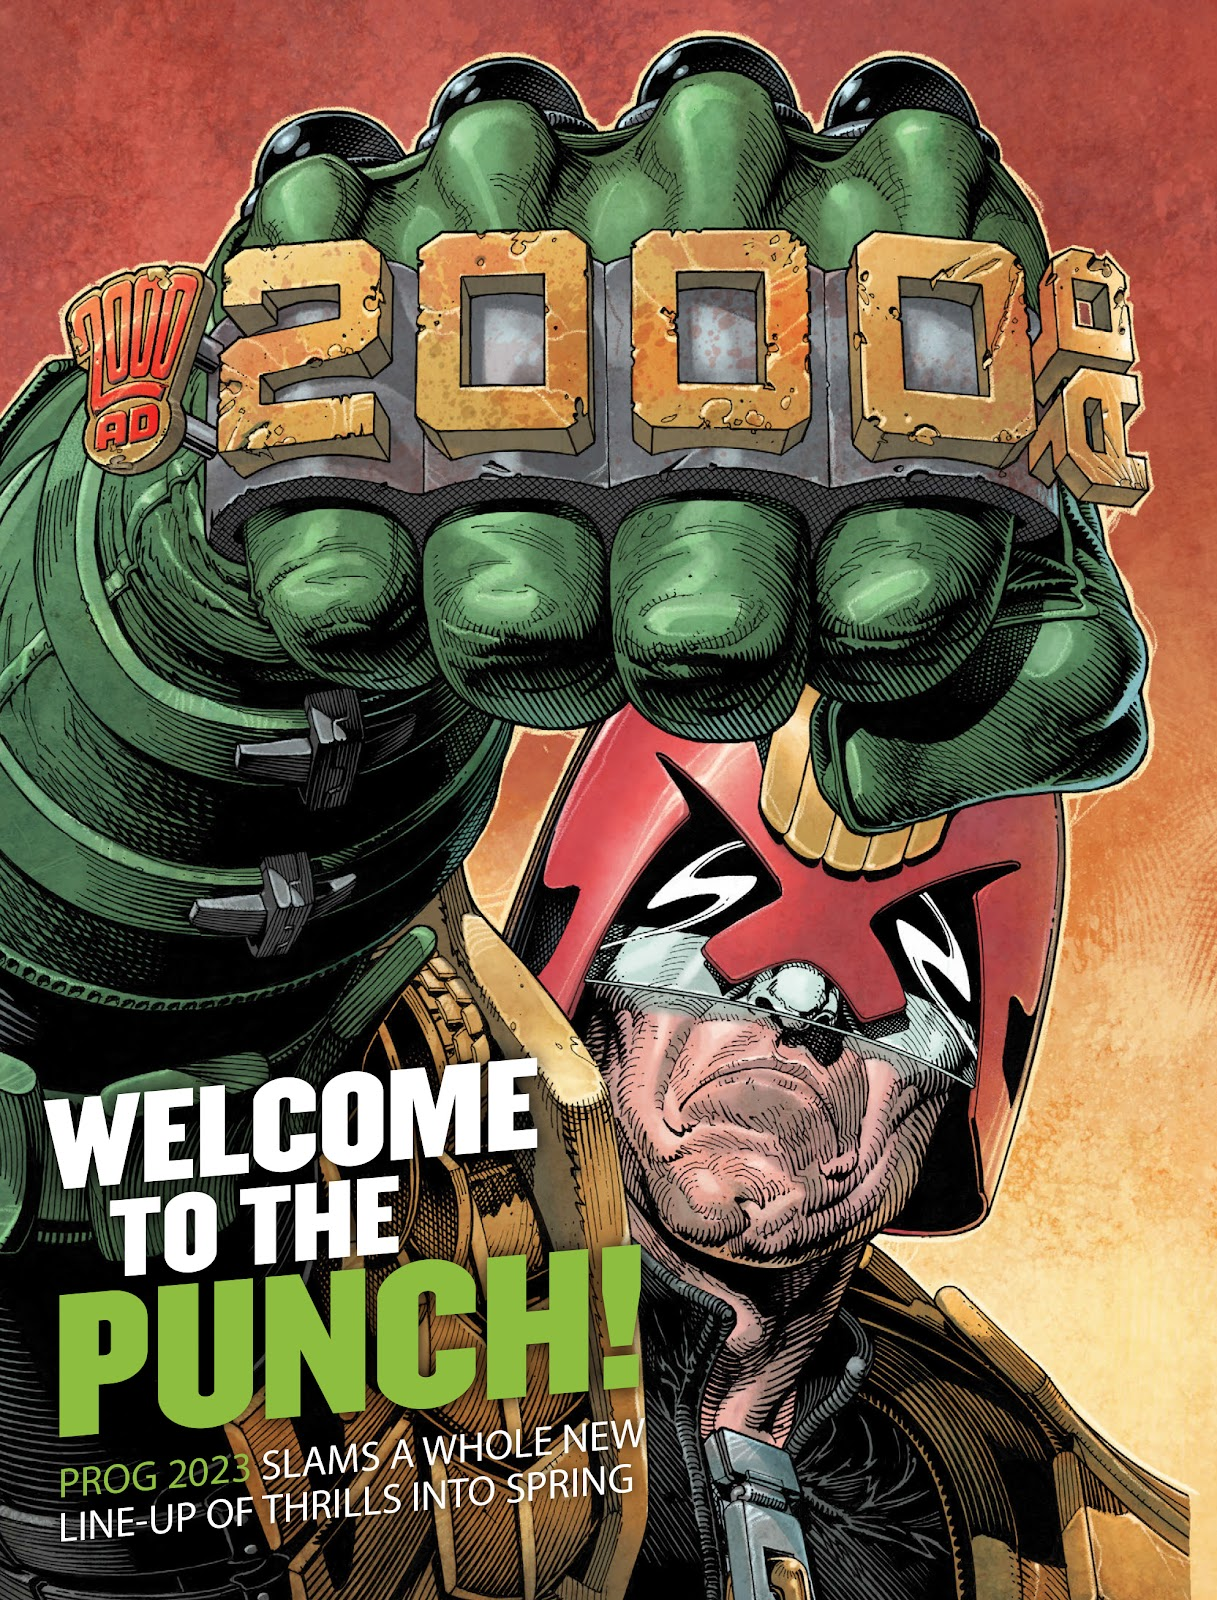 Judge Dredd Megazine (Vol. 5) Issue #382 #181 - English 49